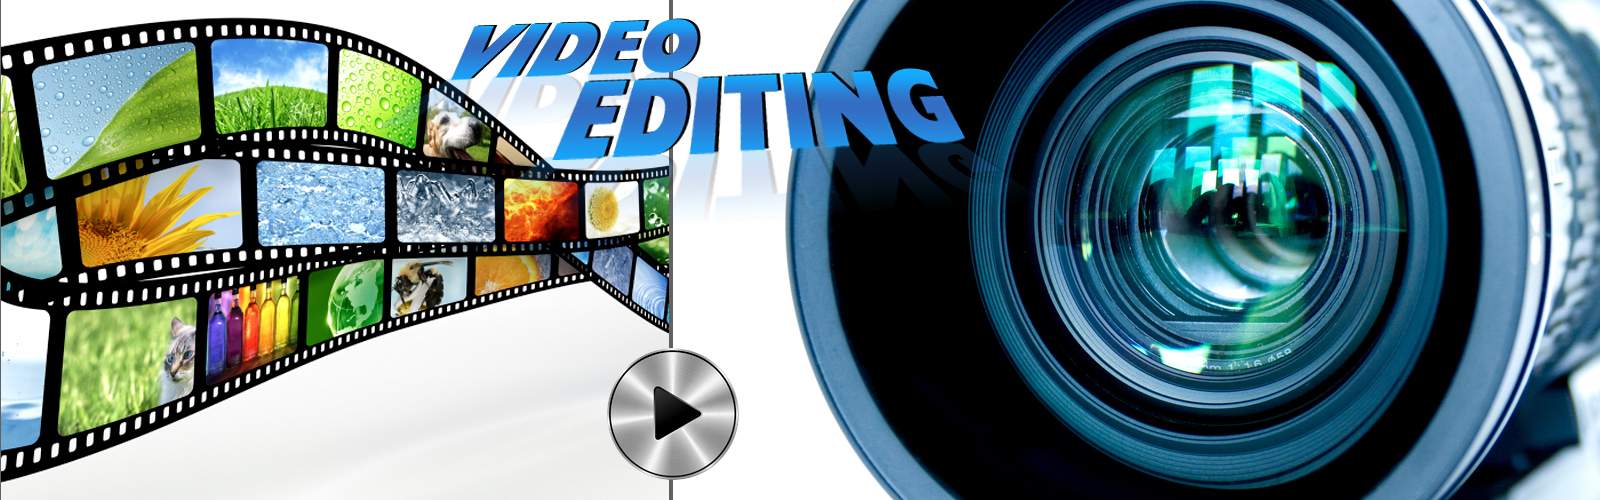 Jasa Editing Video - Malang Terpercaya